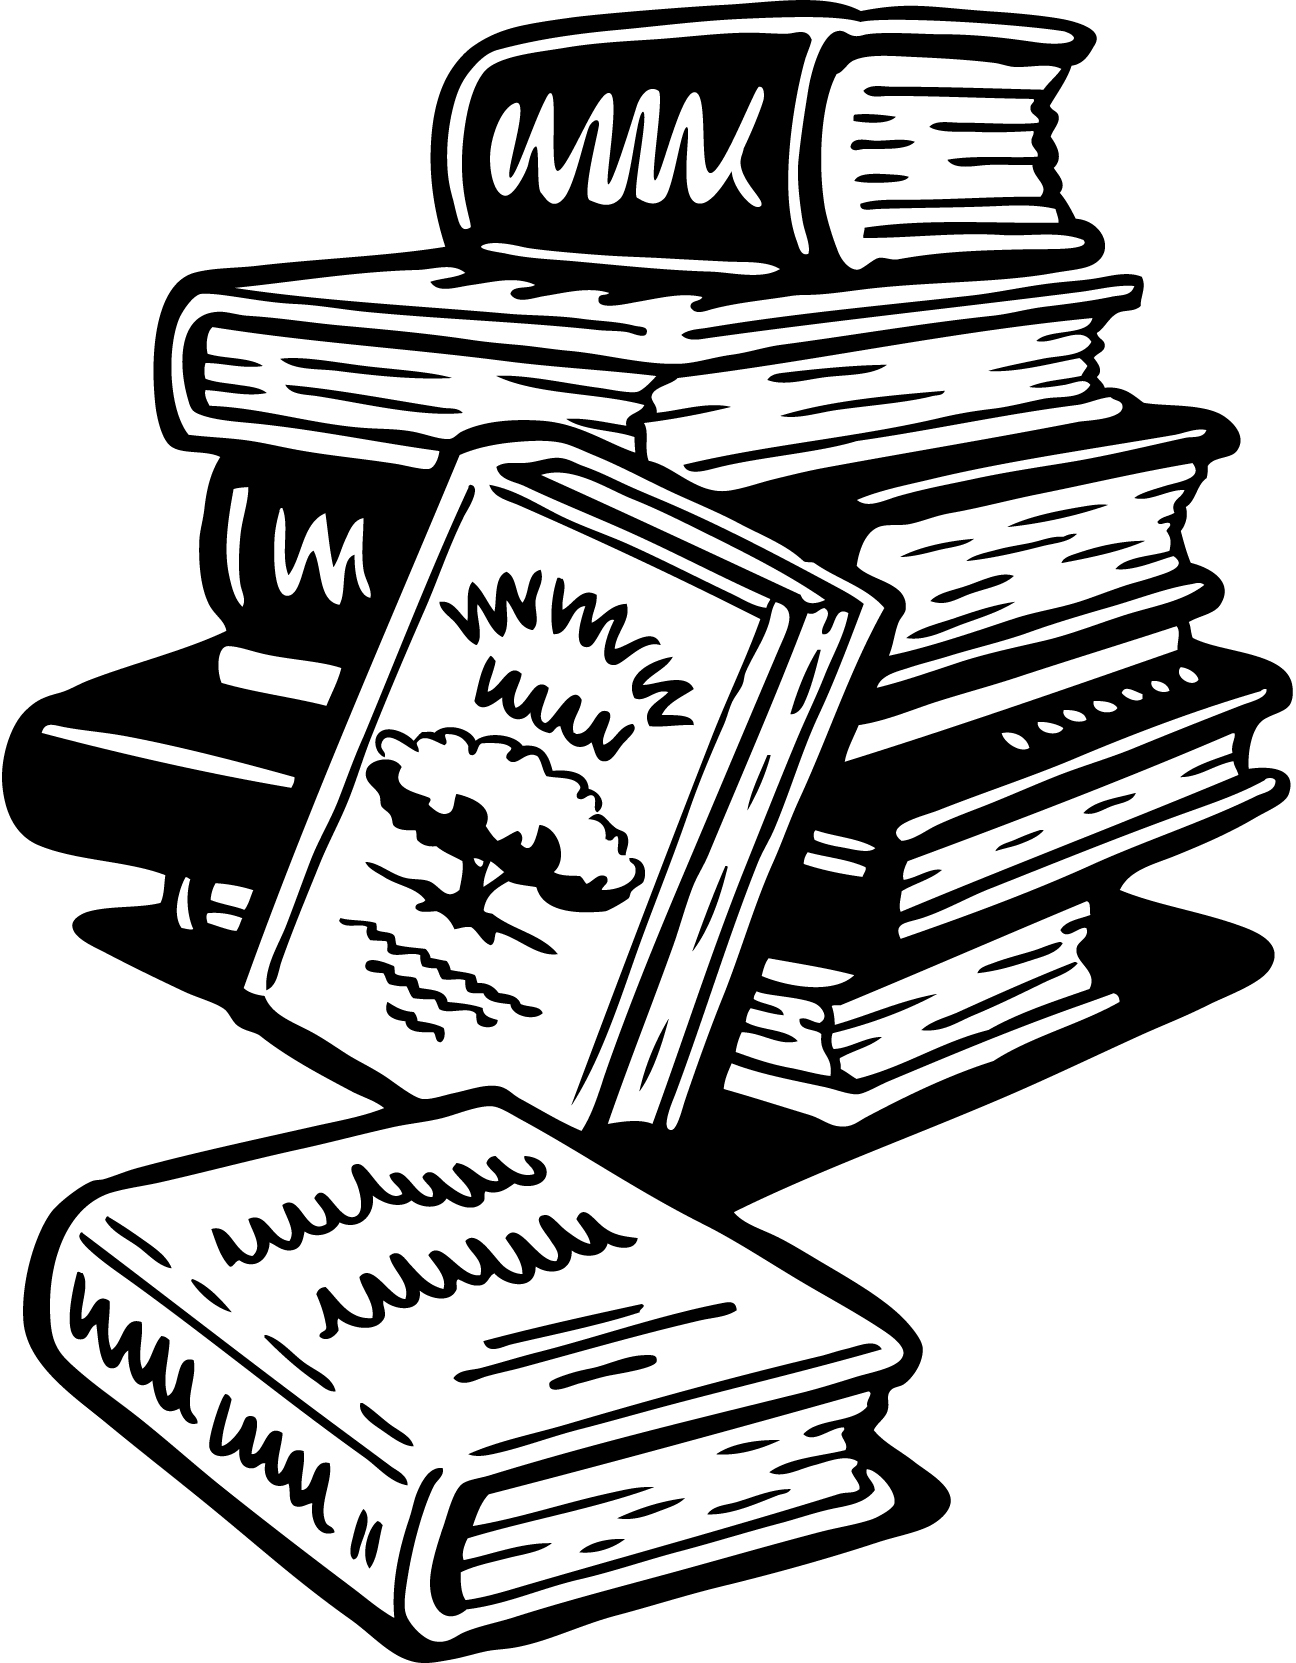 Images For > Stack Of Books Cartoon Black And White